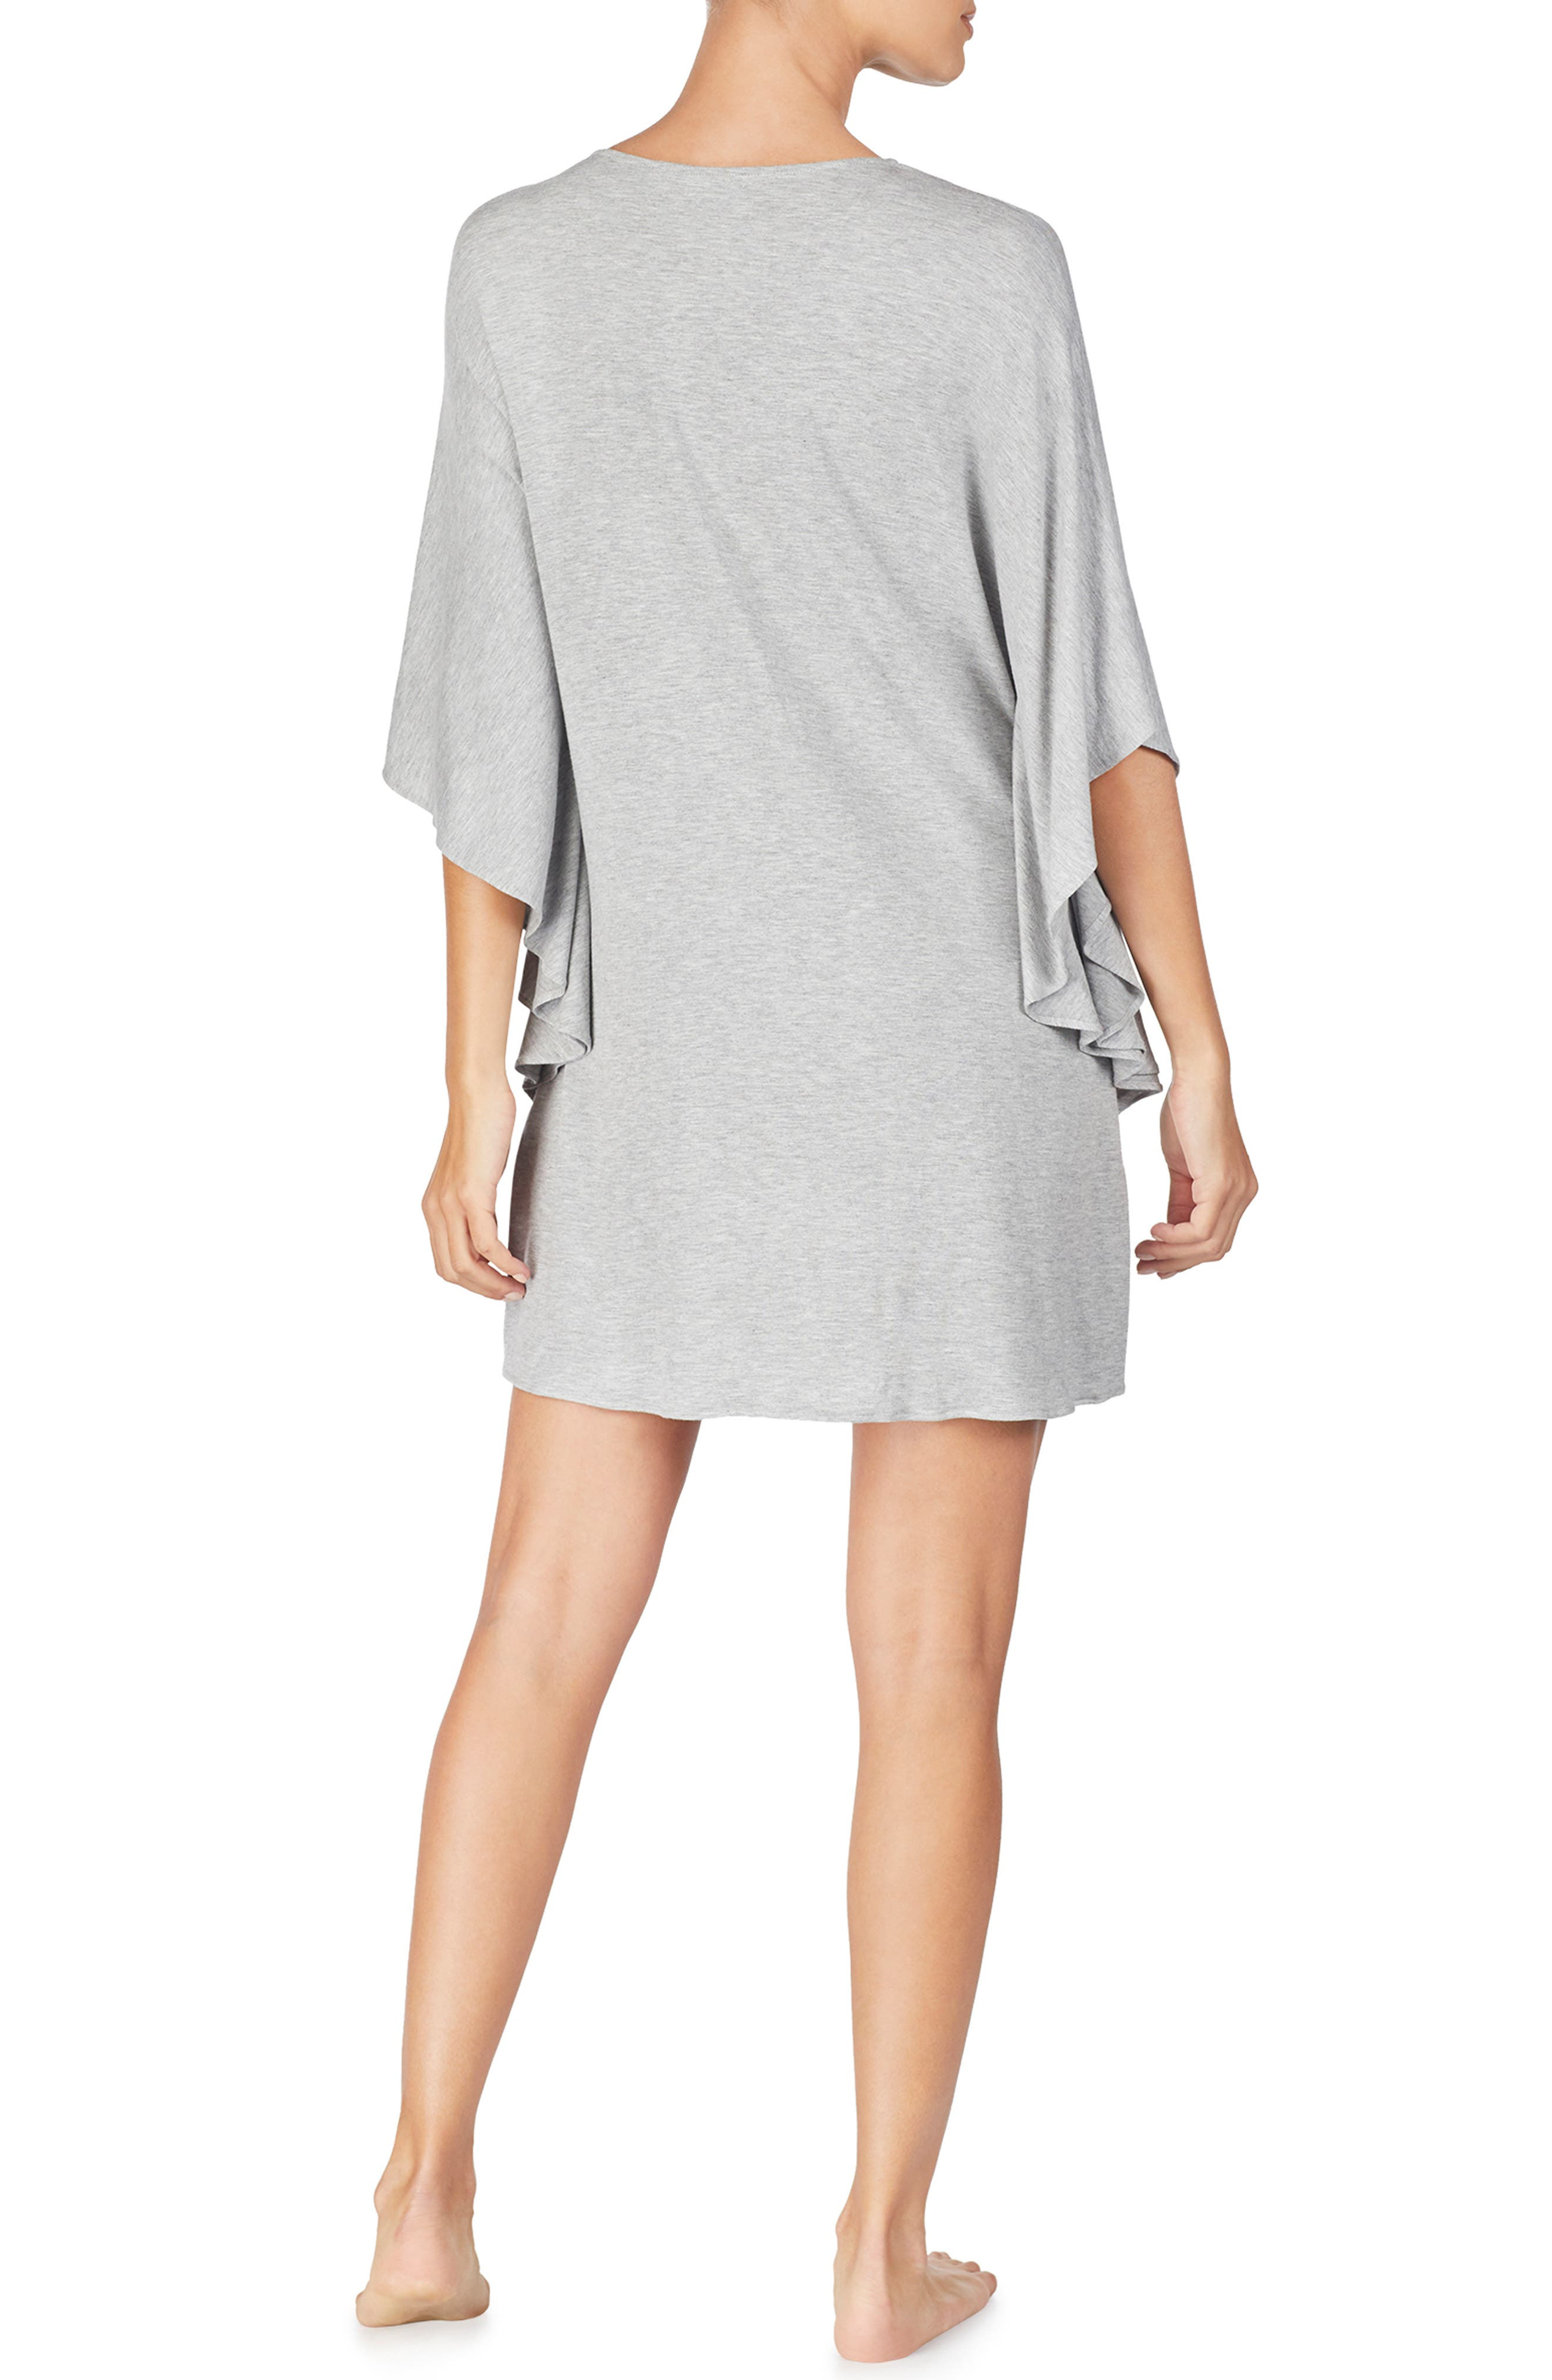 LAUREN RALPH LAUREN, Caftan Nightgown, Alternate thumbnail 2, color, GREY